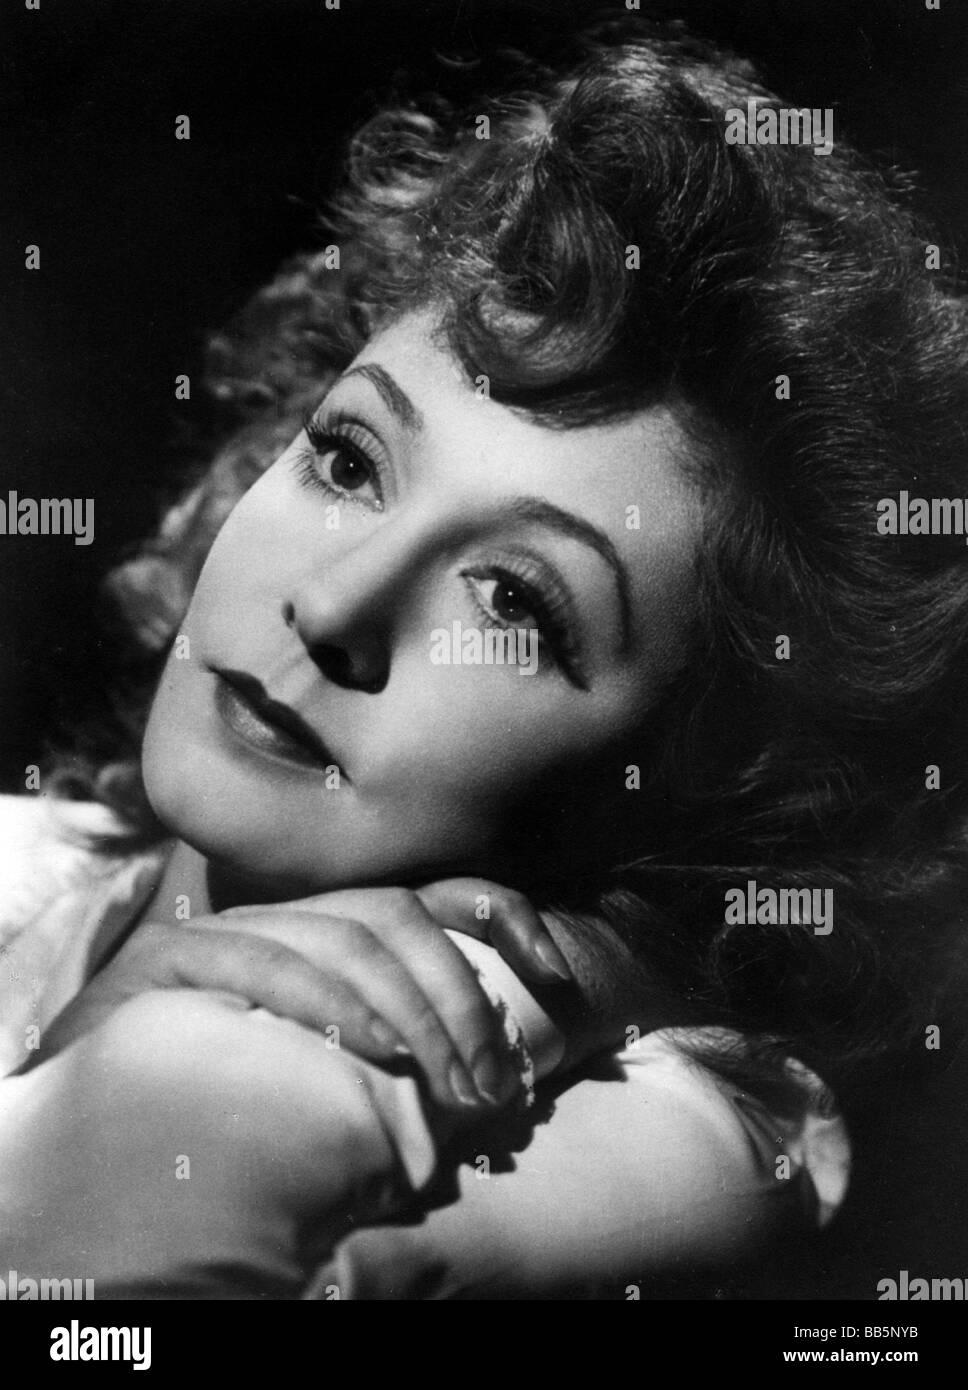 Leander, Zarah, 15.3.1907 - 23.6.1981, Swedish actress and singer, portrait, 1940s, Additional-Rights-Clearances - Stock Image